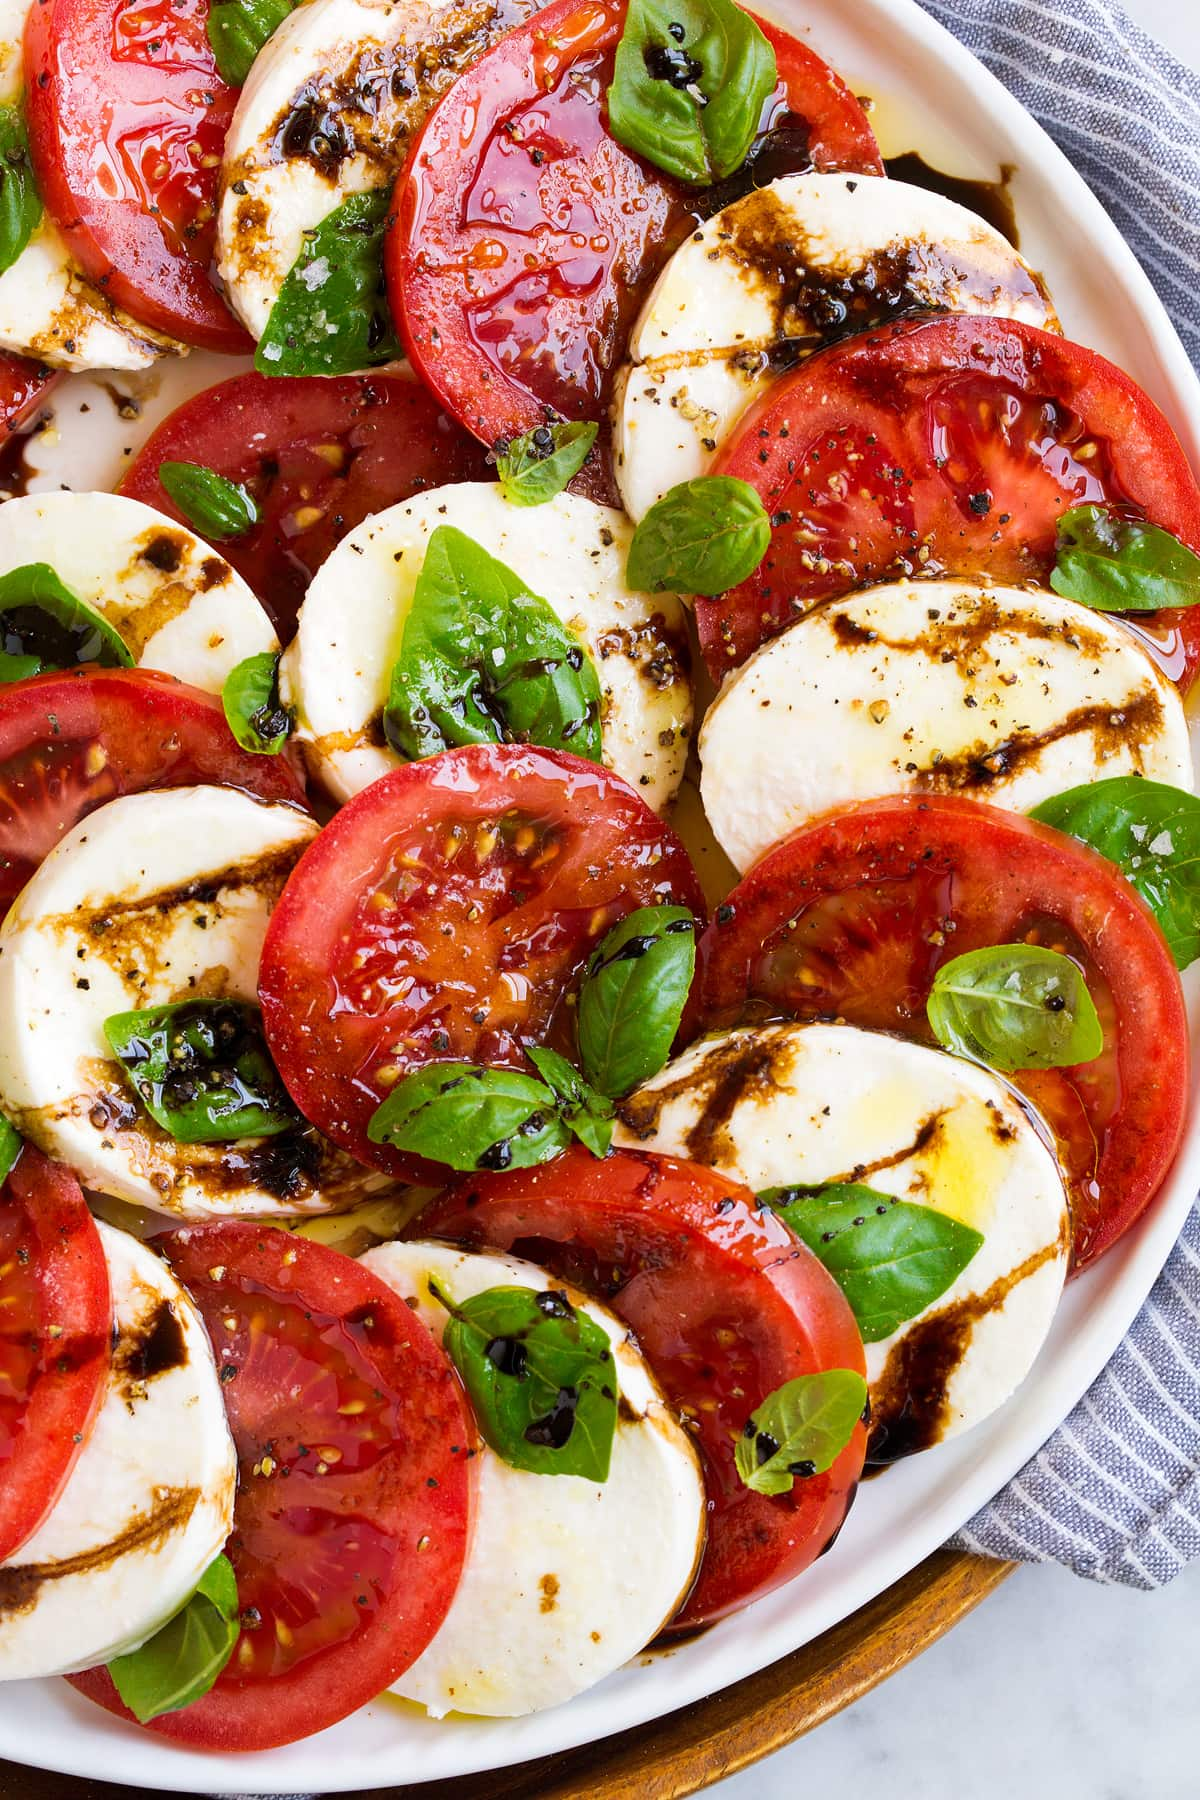 Close up image of caprese salad.